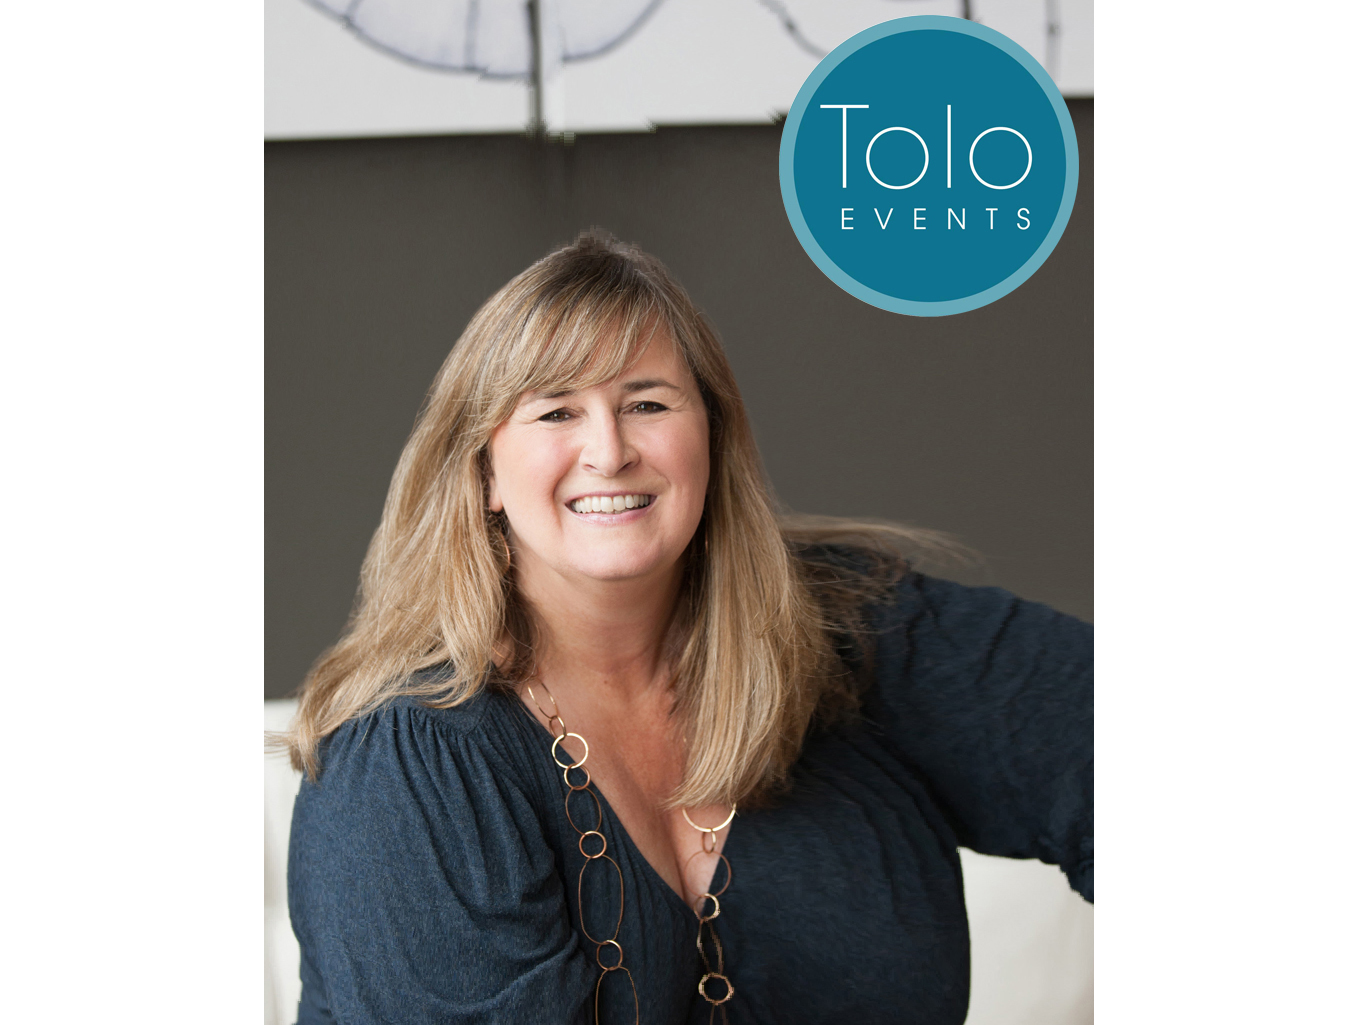 Headshot owner of Tolo Events